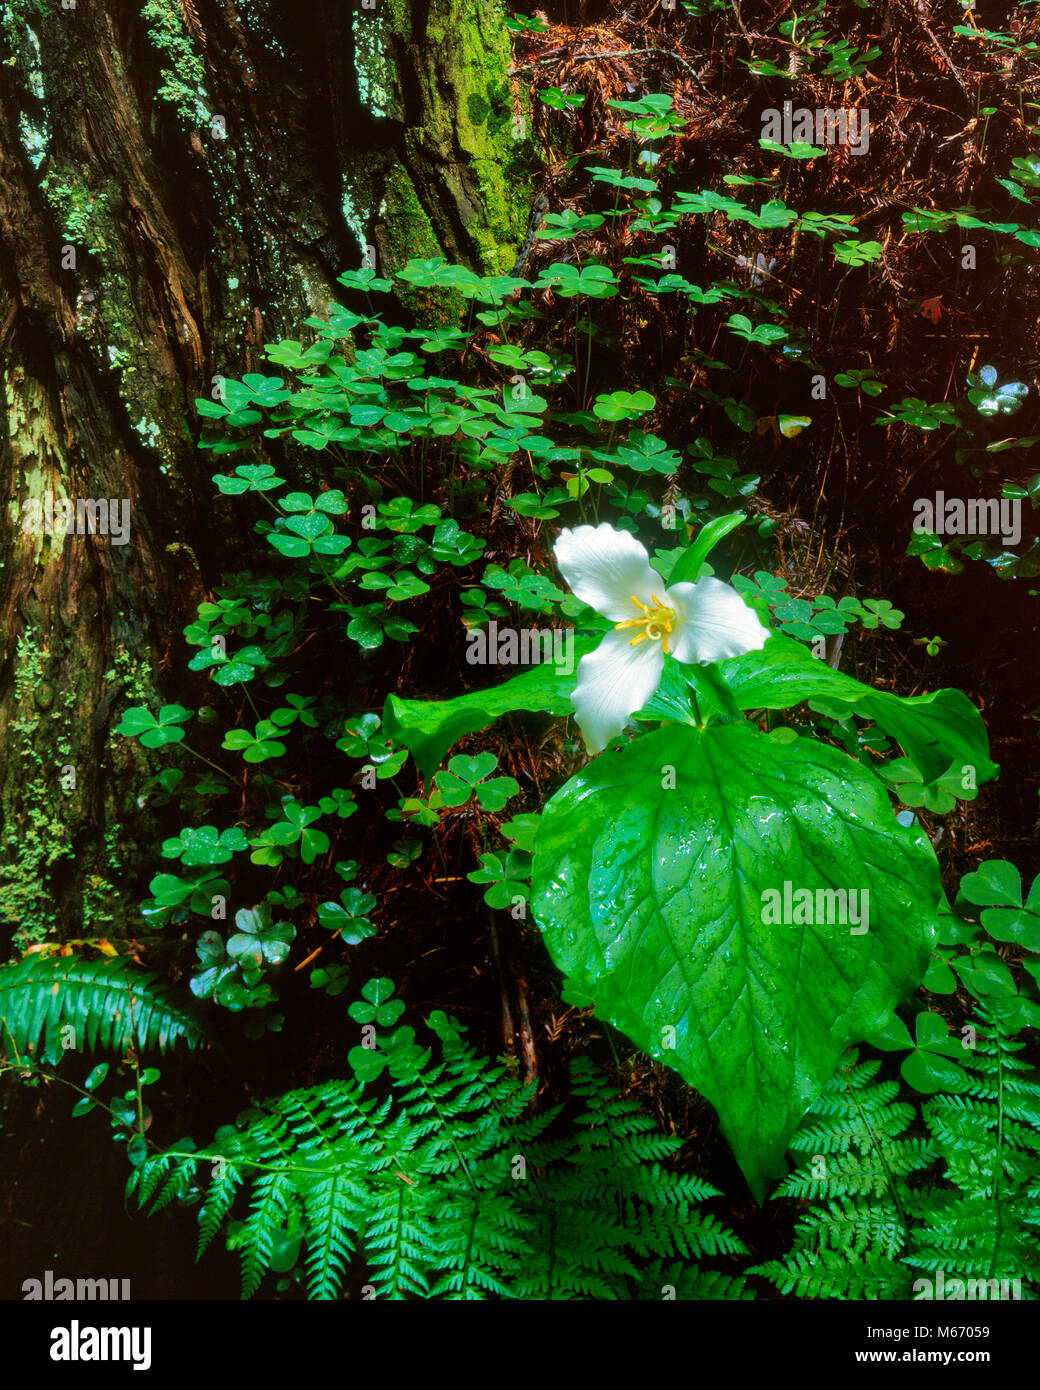 Trillium, Trillium ovatum, Redwood Trunk, Redwood National Park, California Stock Photo